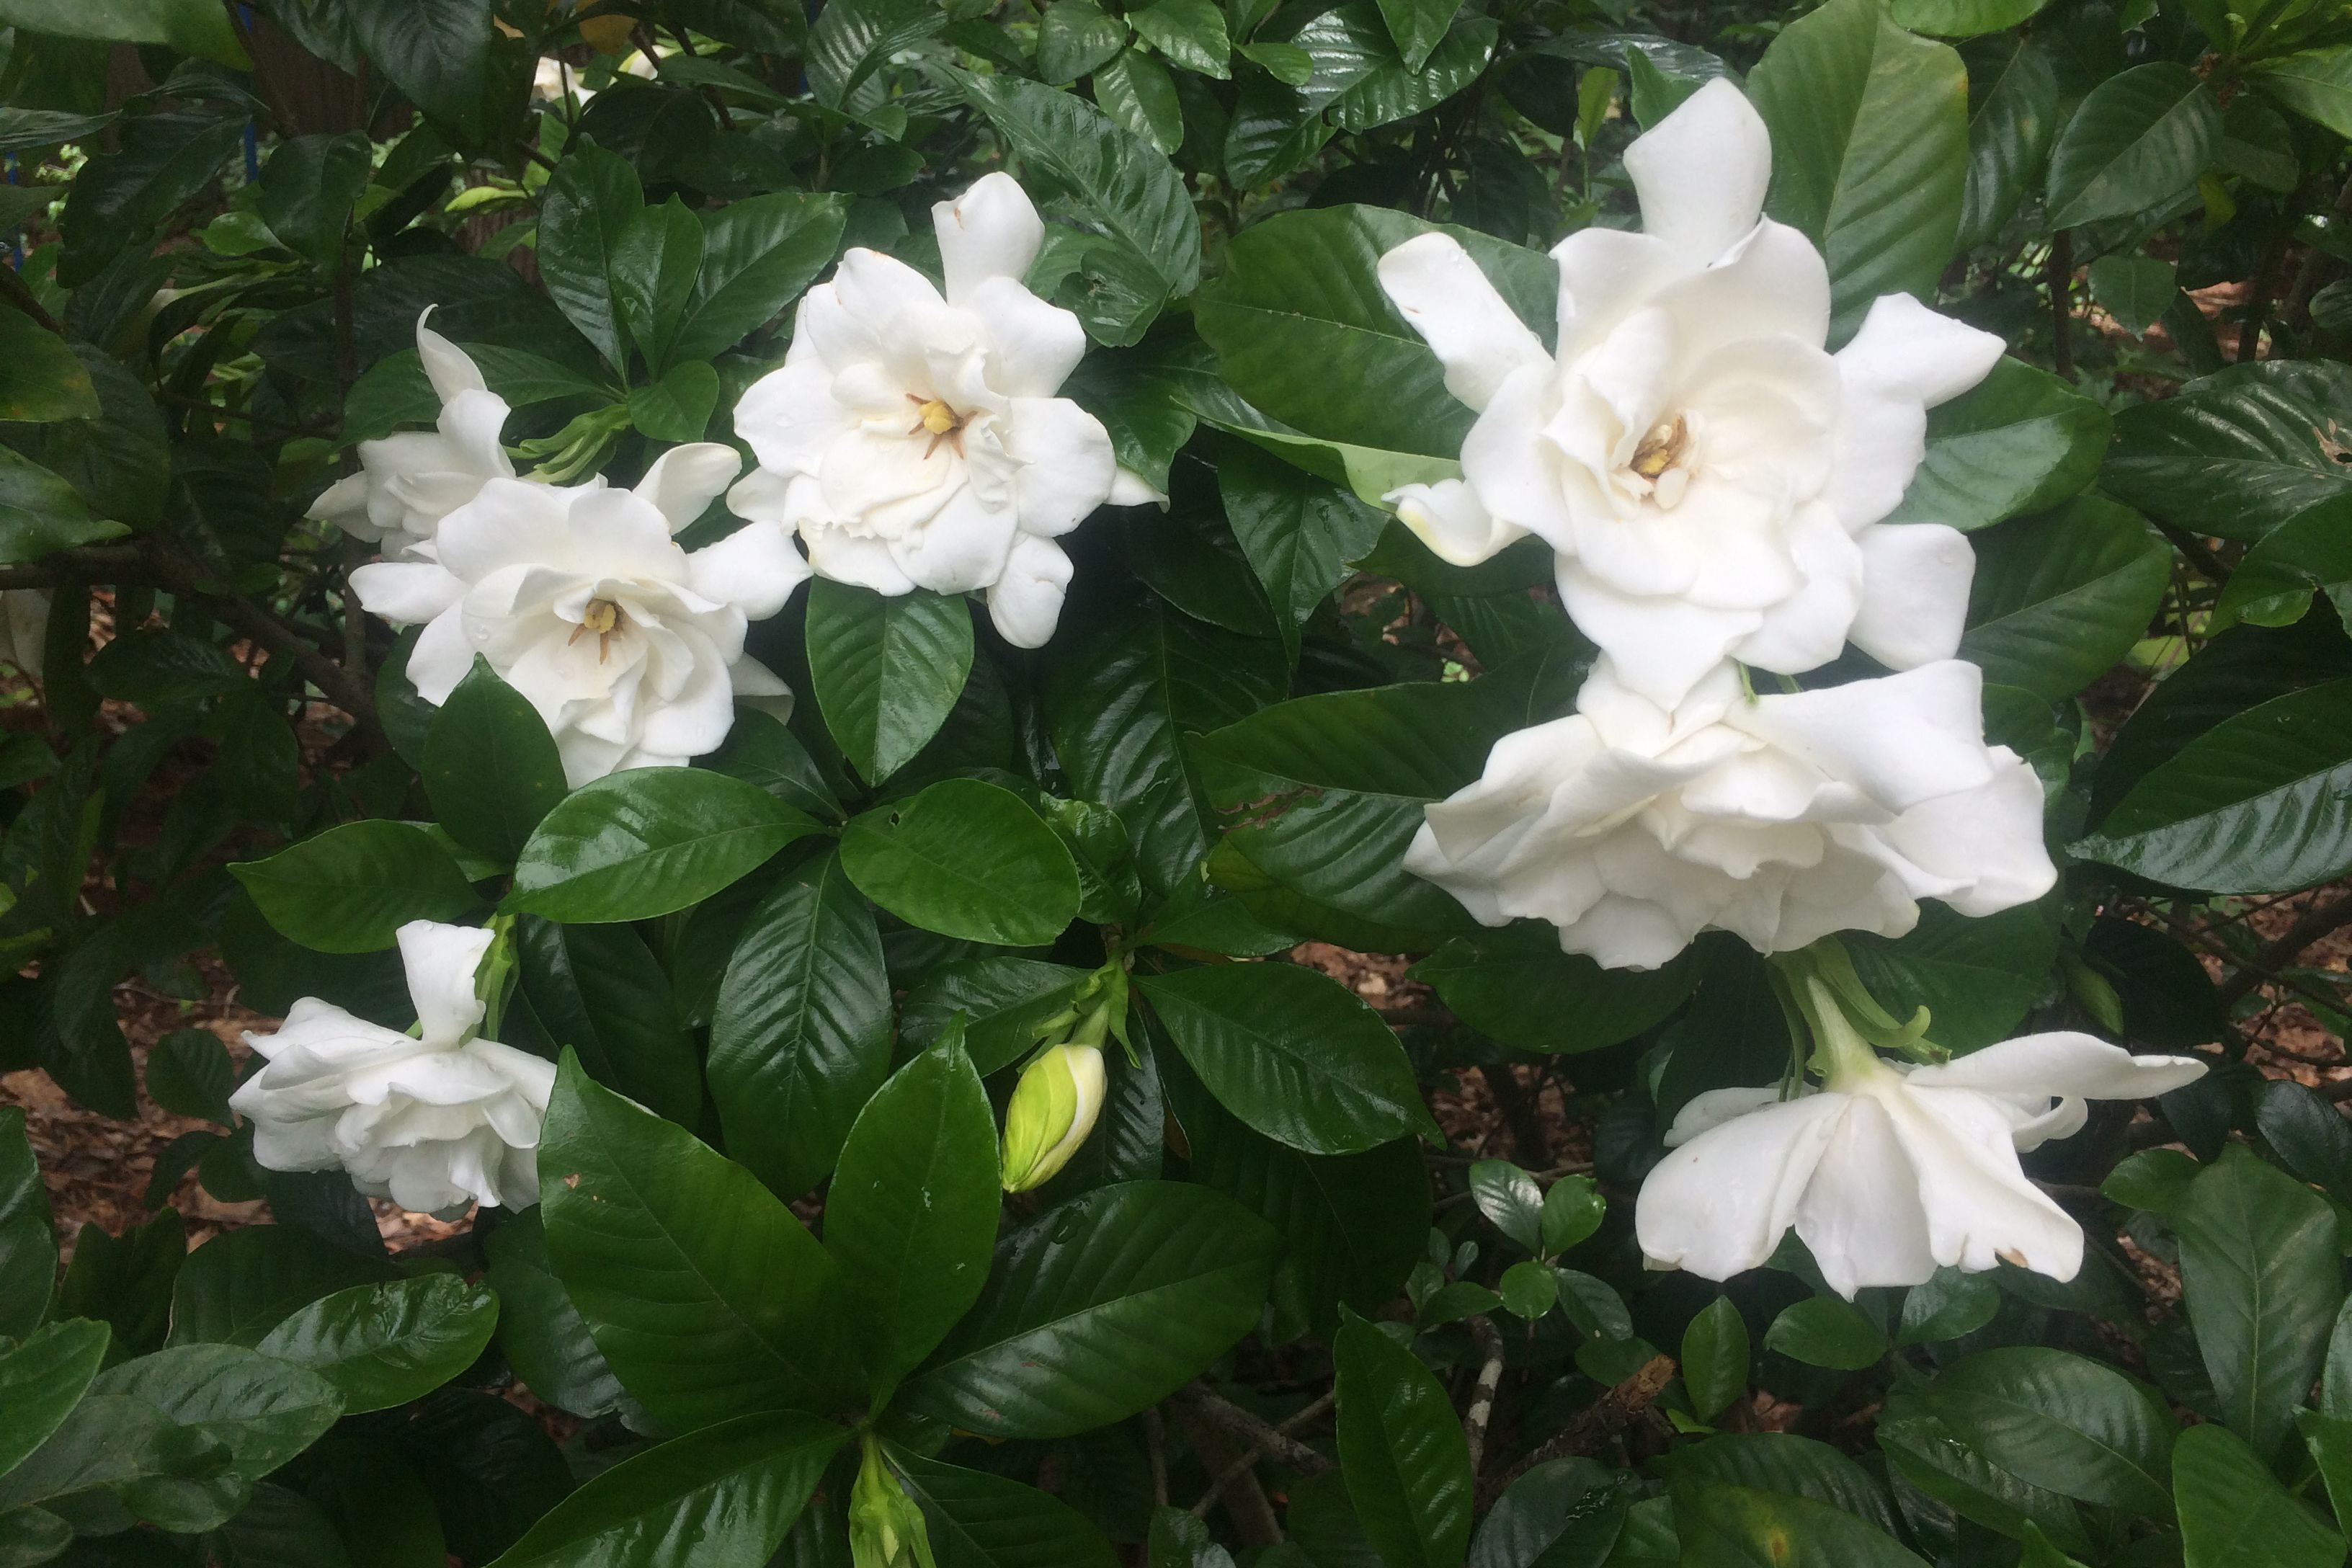 How to Grow a Gardenia Tree